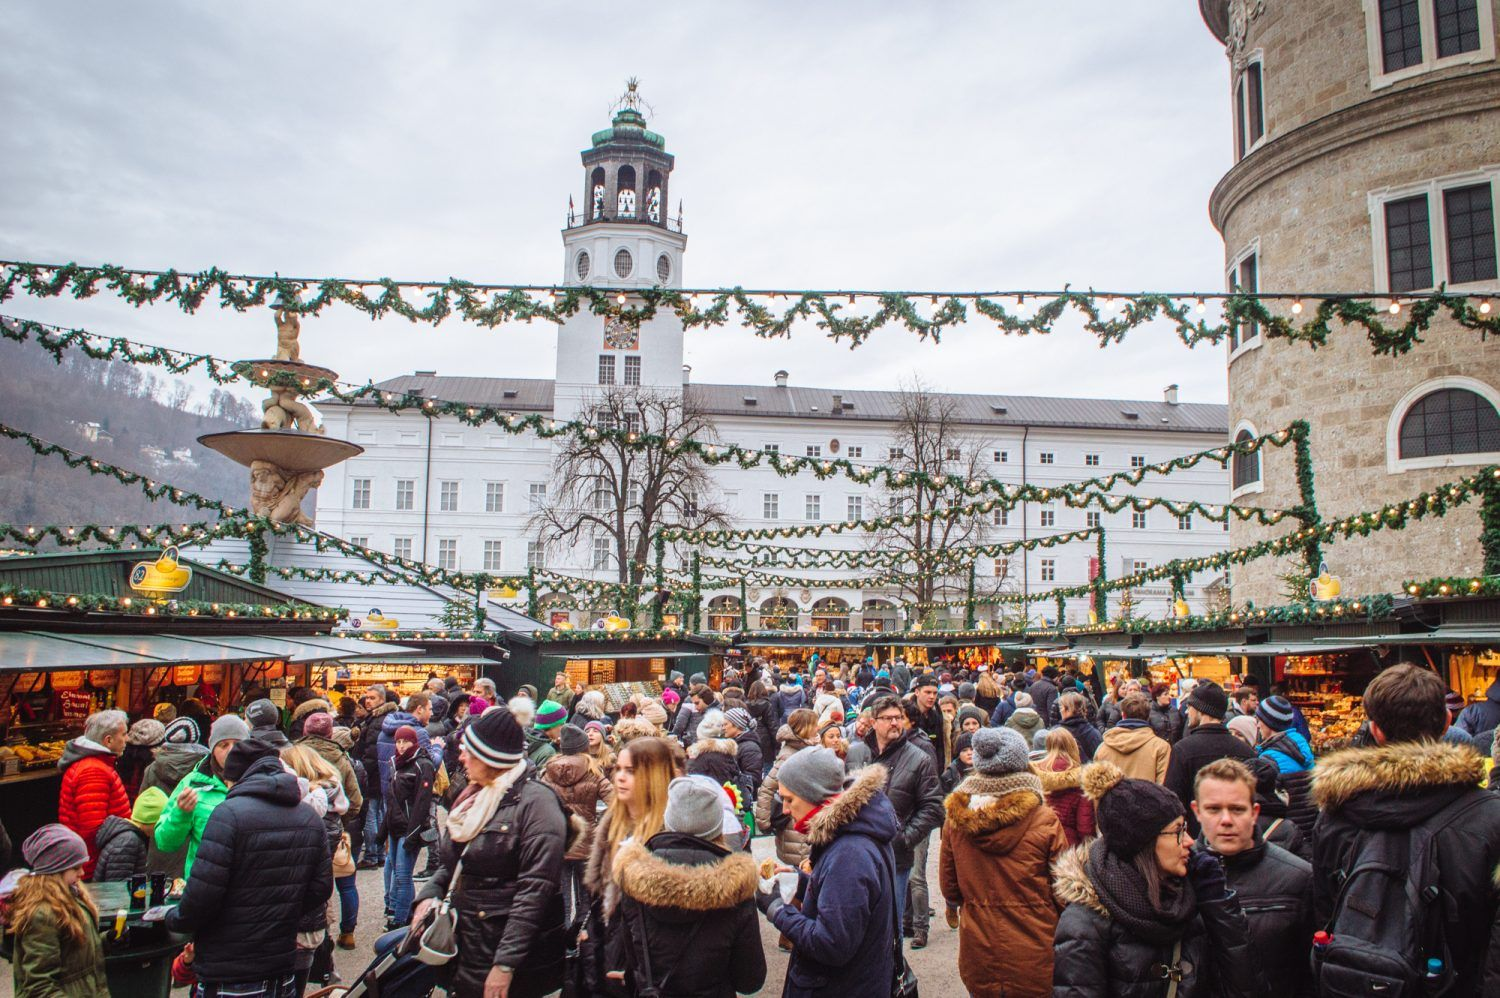 Munich Christmas Markets 2020 Guide Where to Go, What to